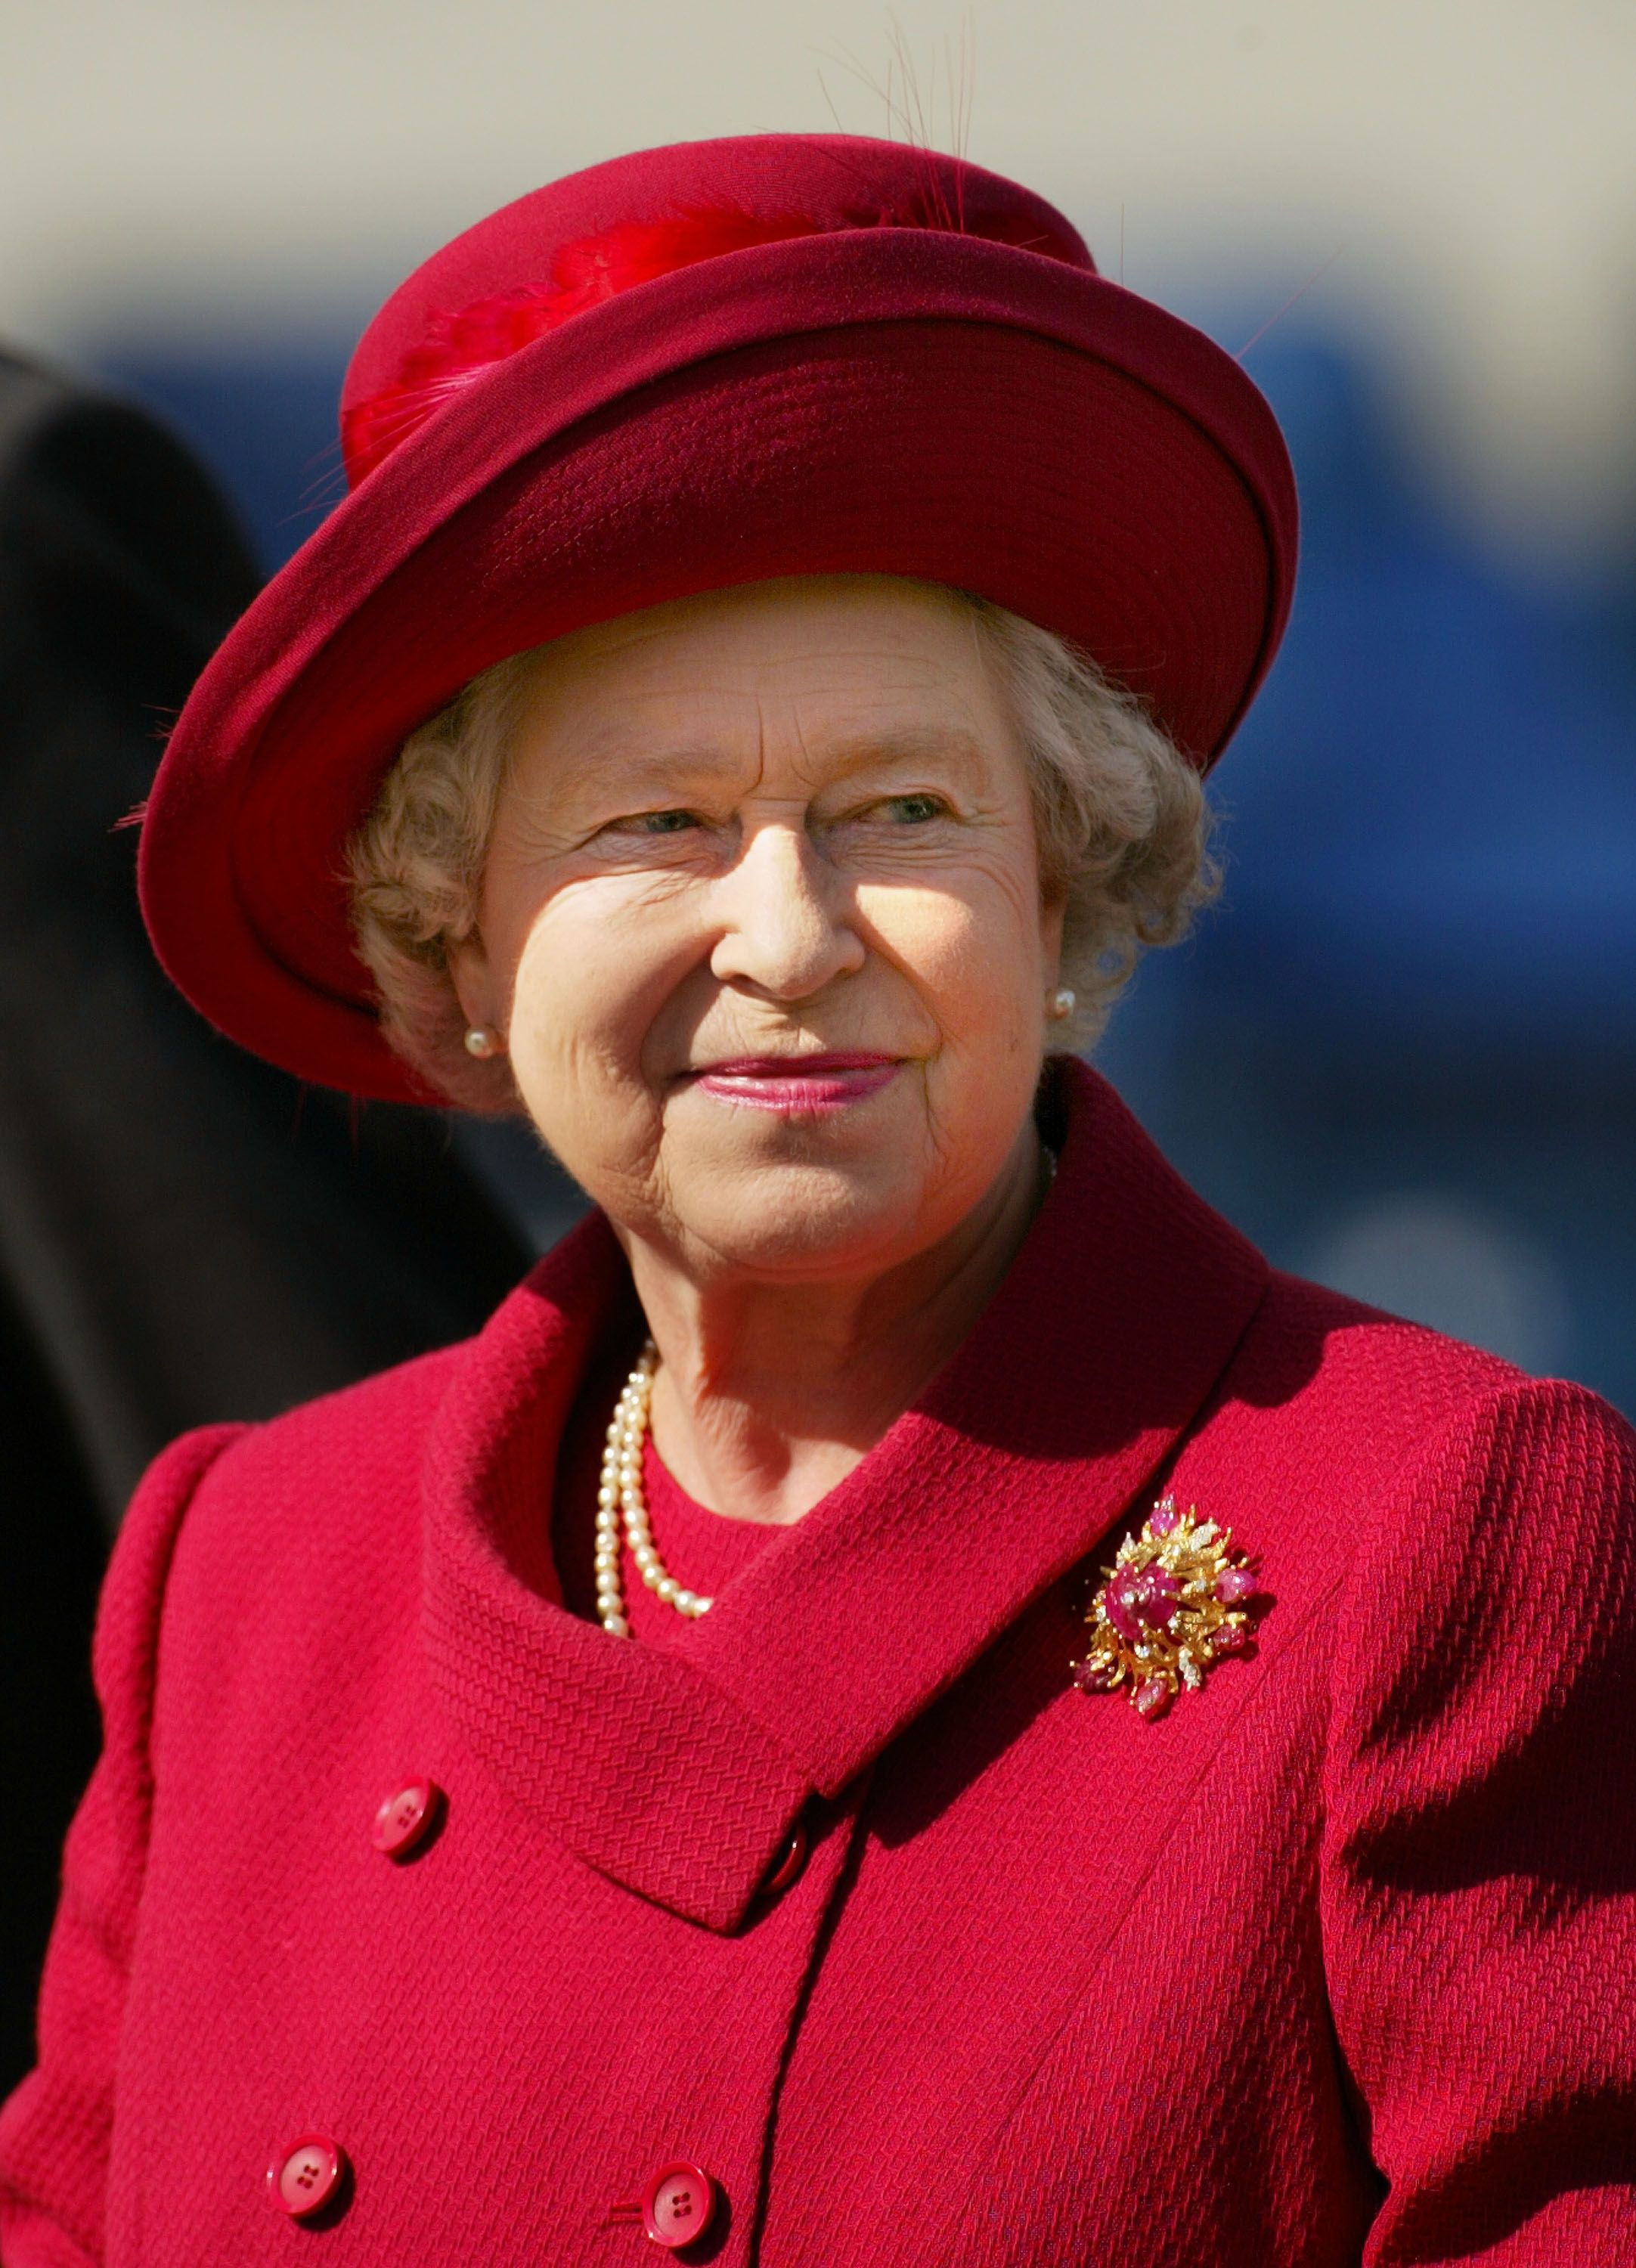 Queen Elizabeth at The Royal Windsor Horse Show at Windsor on May 18, 2002, Great Park, England. | Source: Getty Images